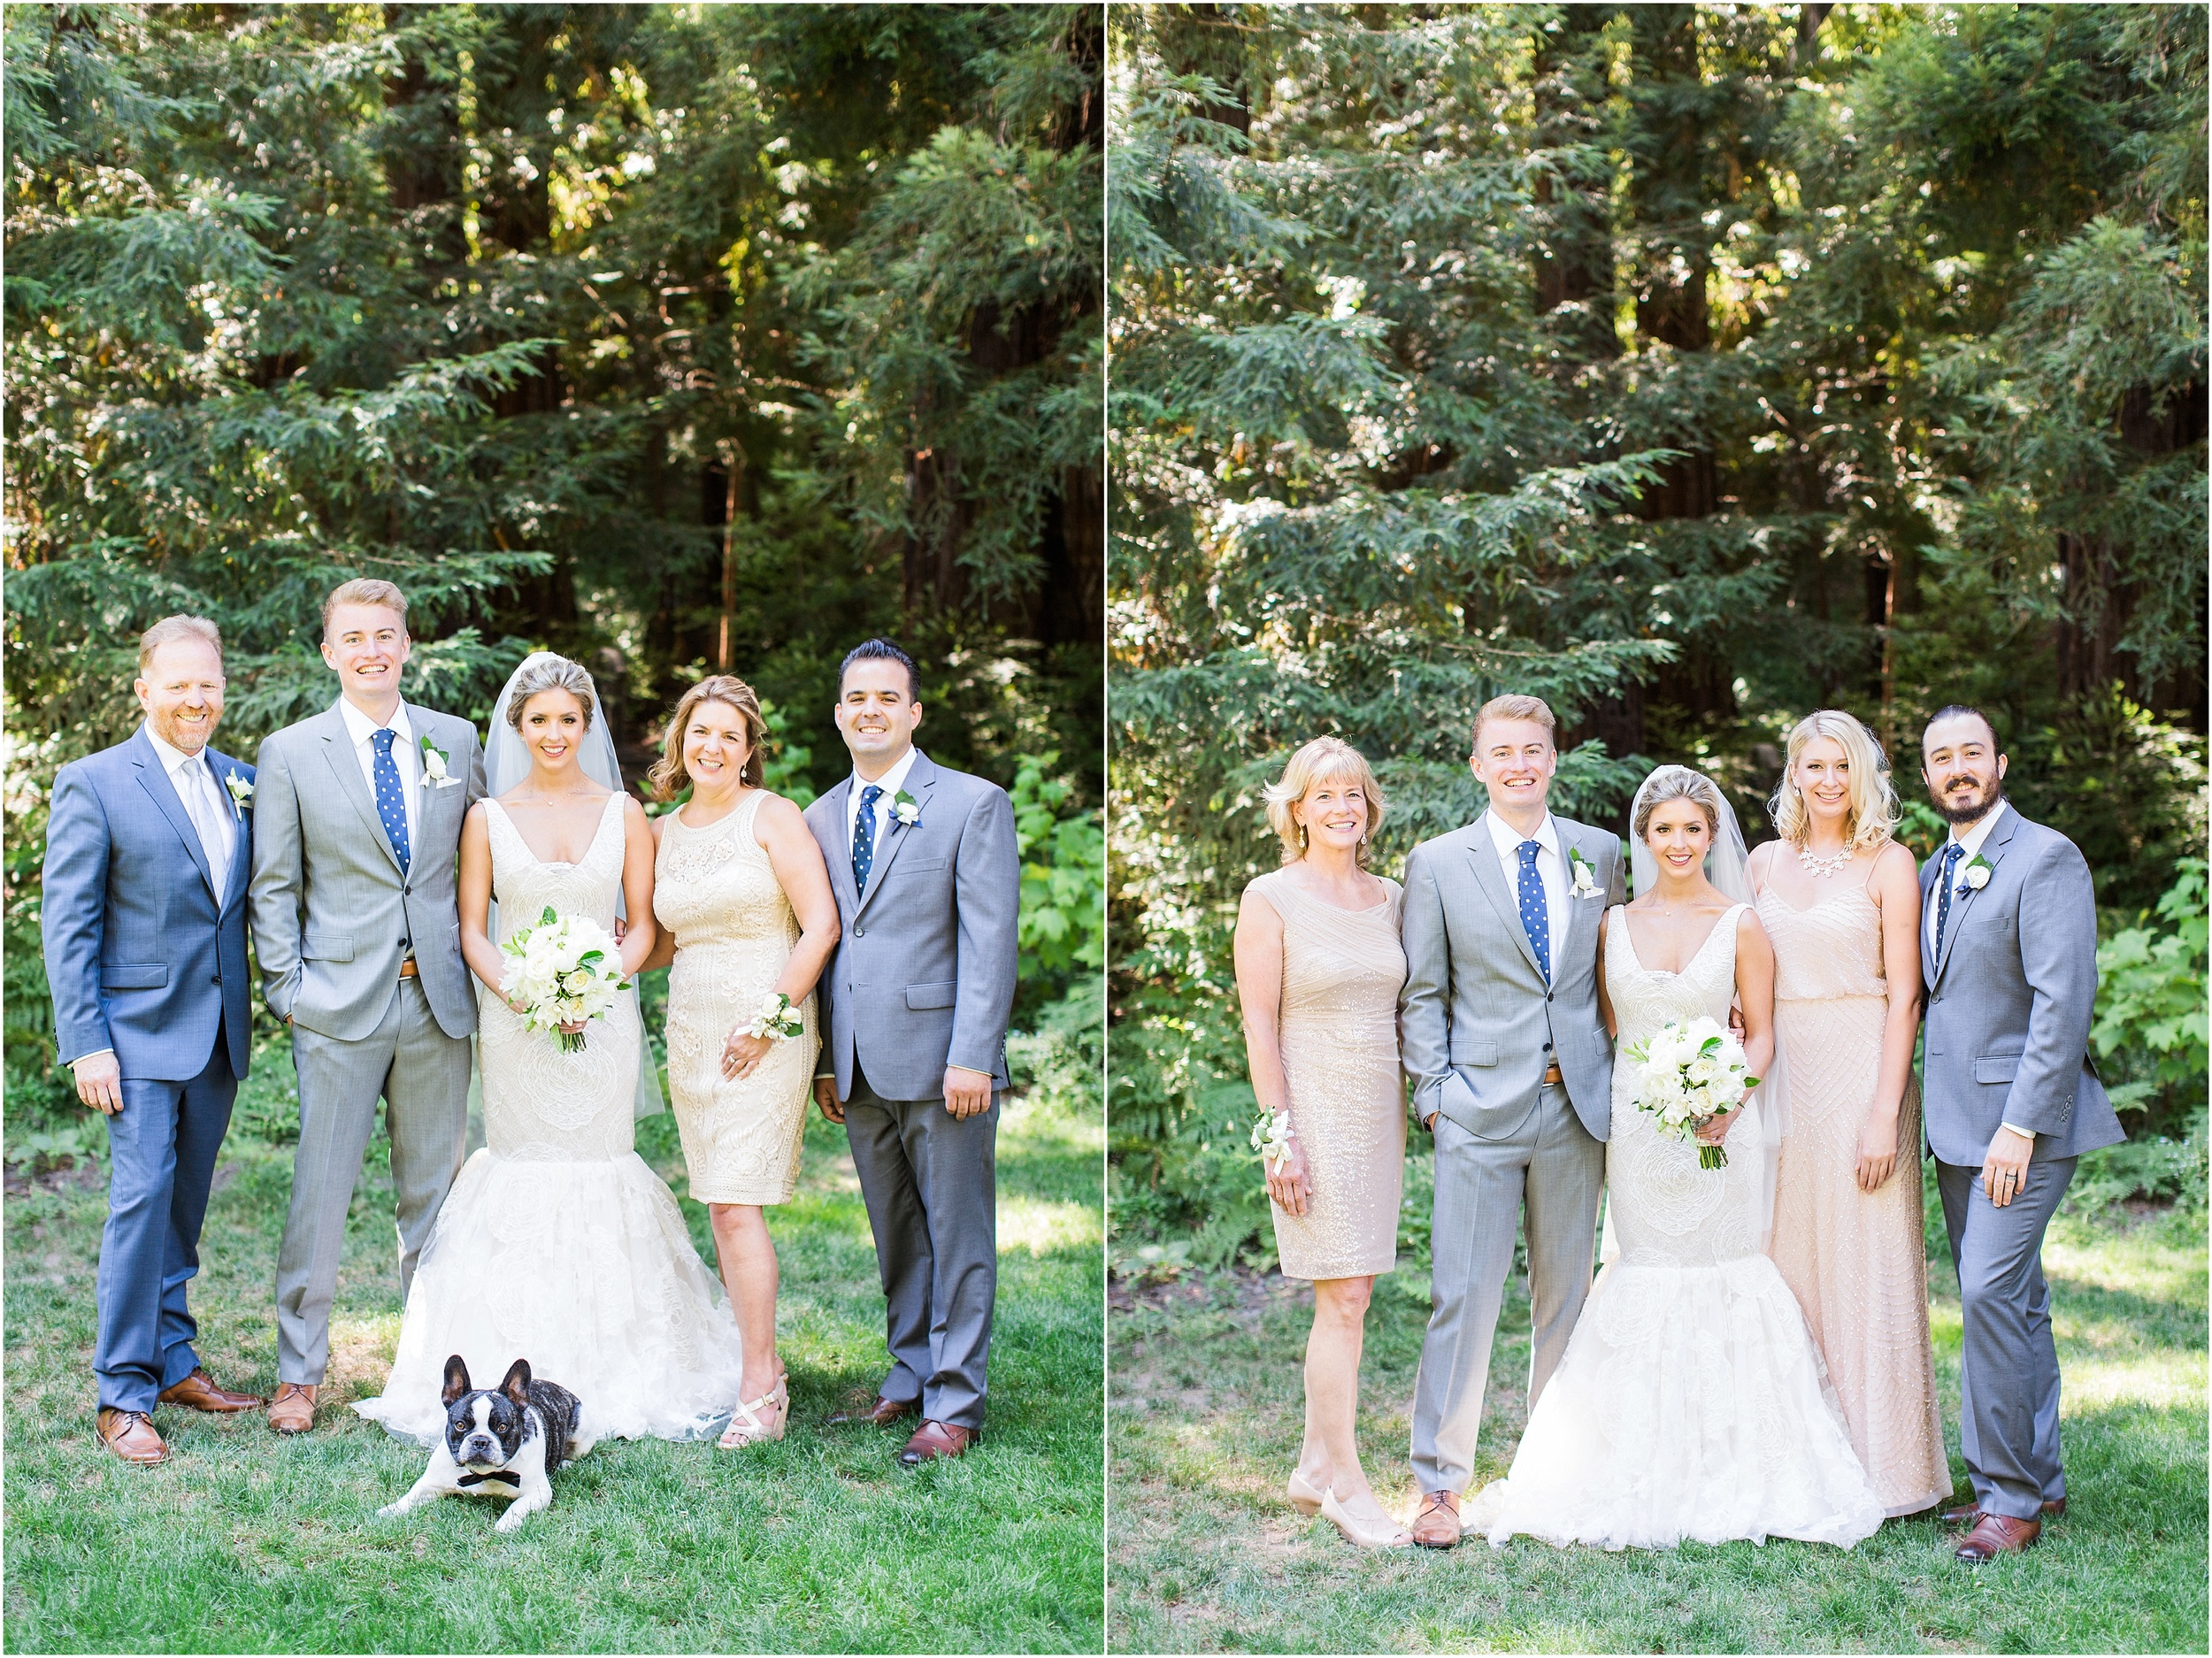 Nestldown_Rustic_Summer_Redwoods_Wedding- 021.jpg